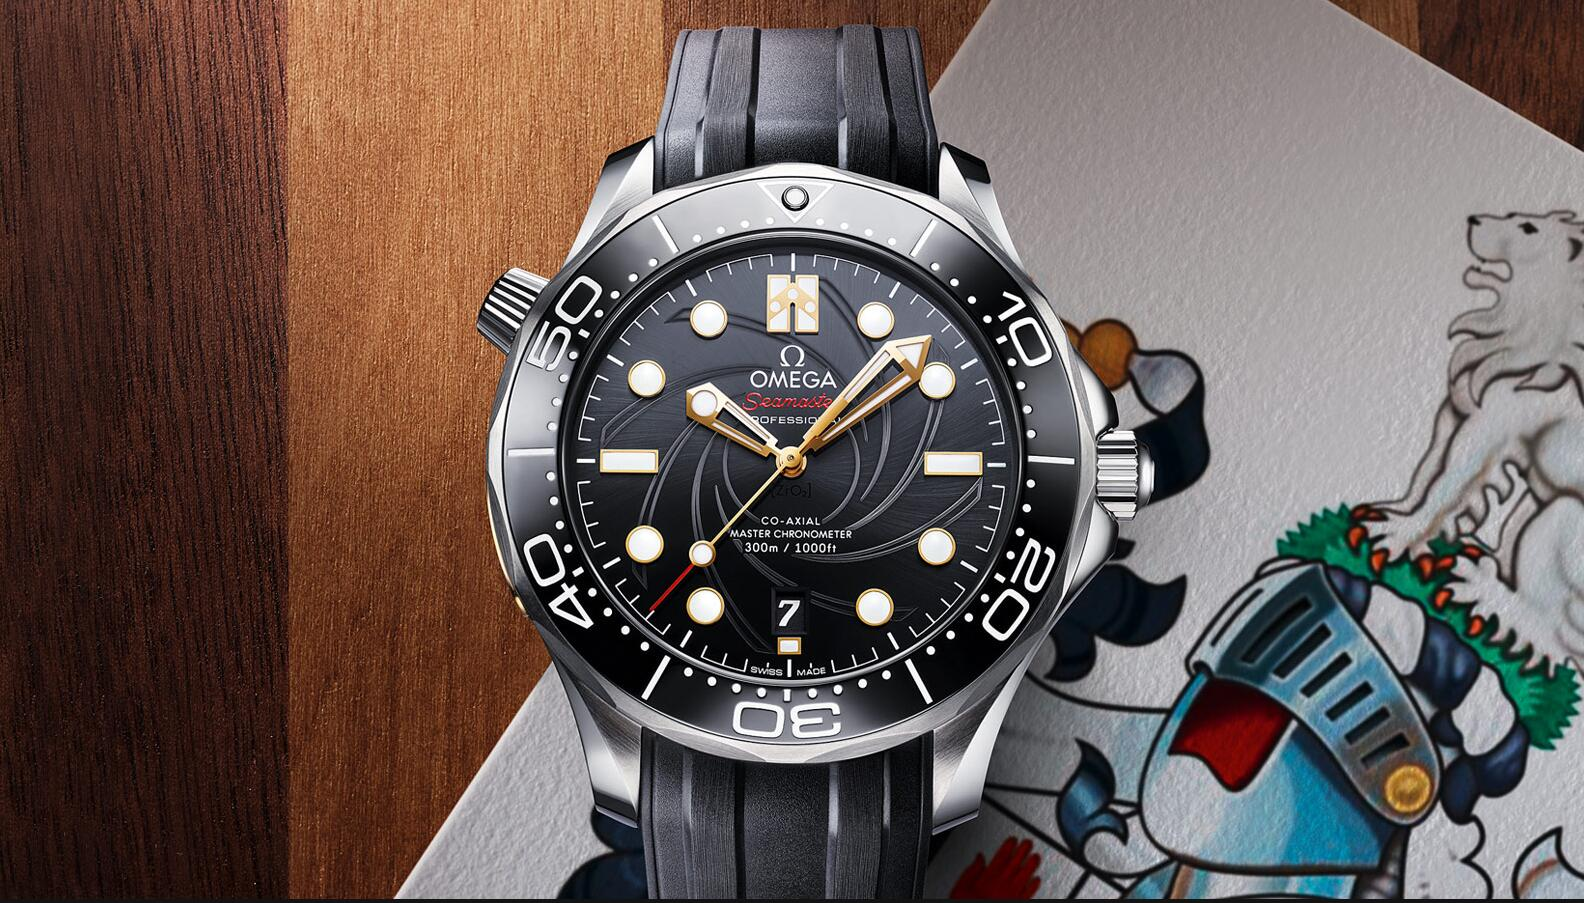 The stainless steel copy watches have black rubber straps.